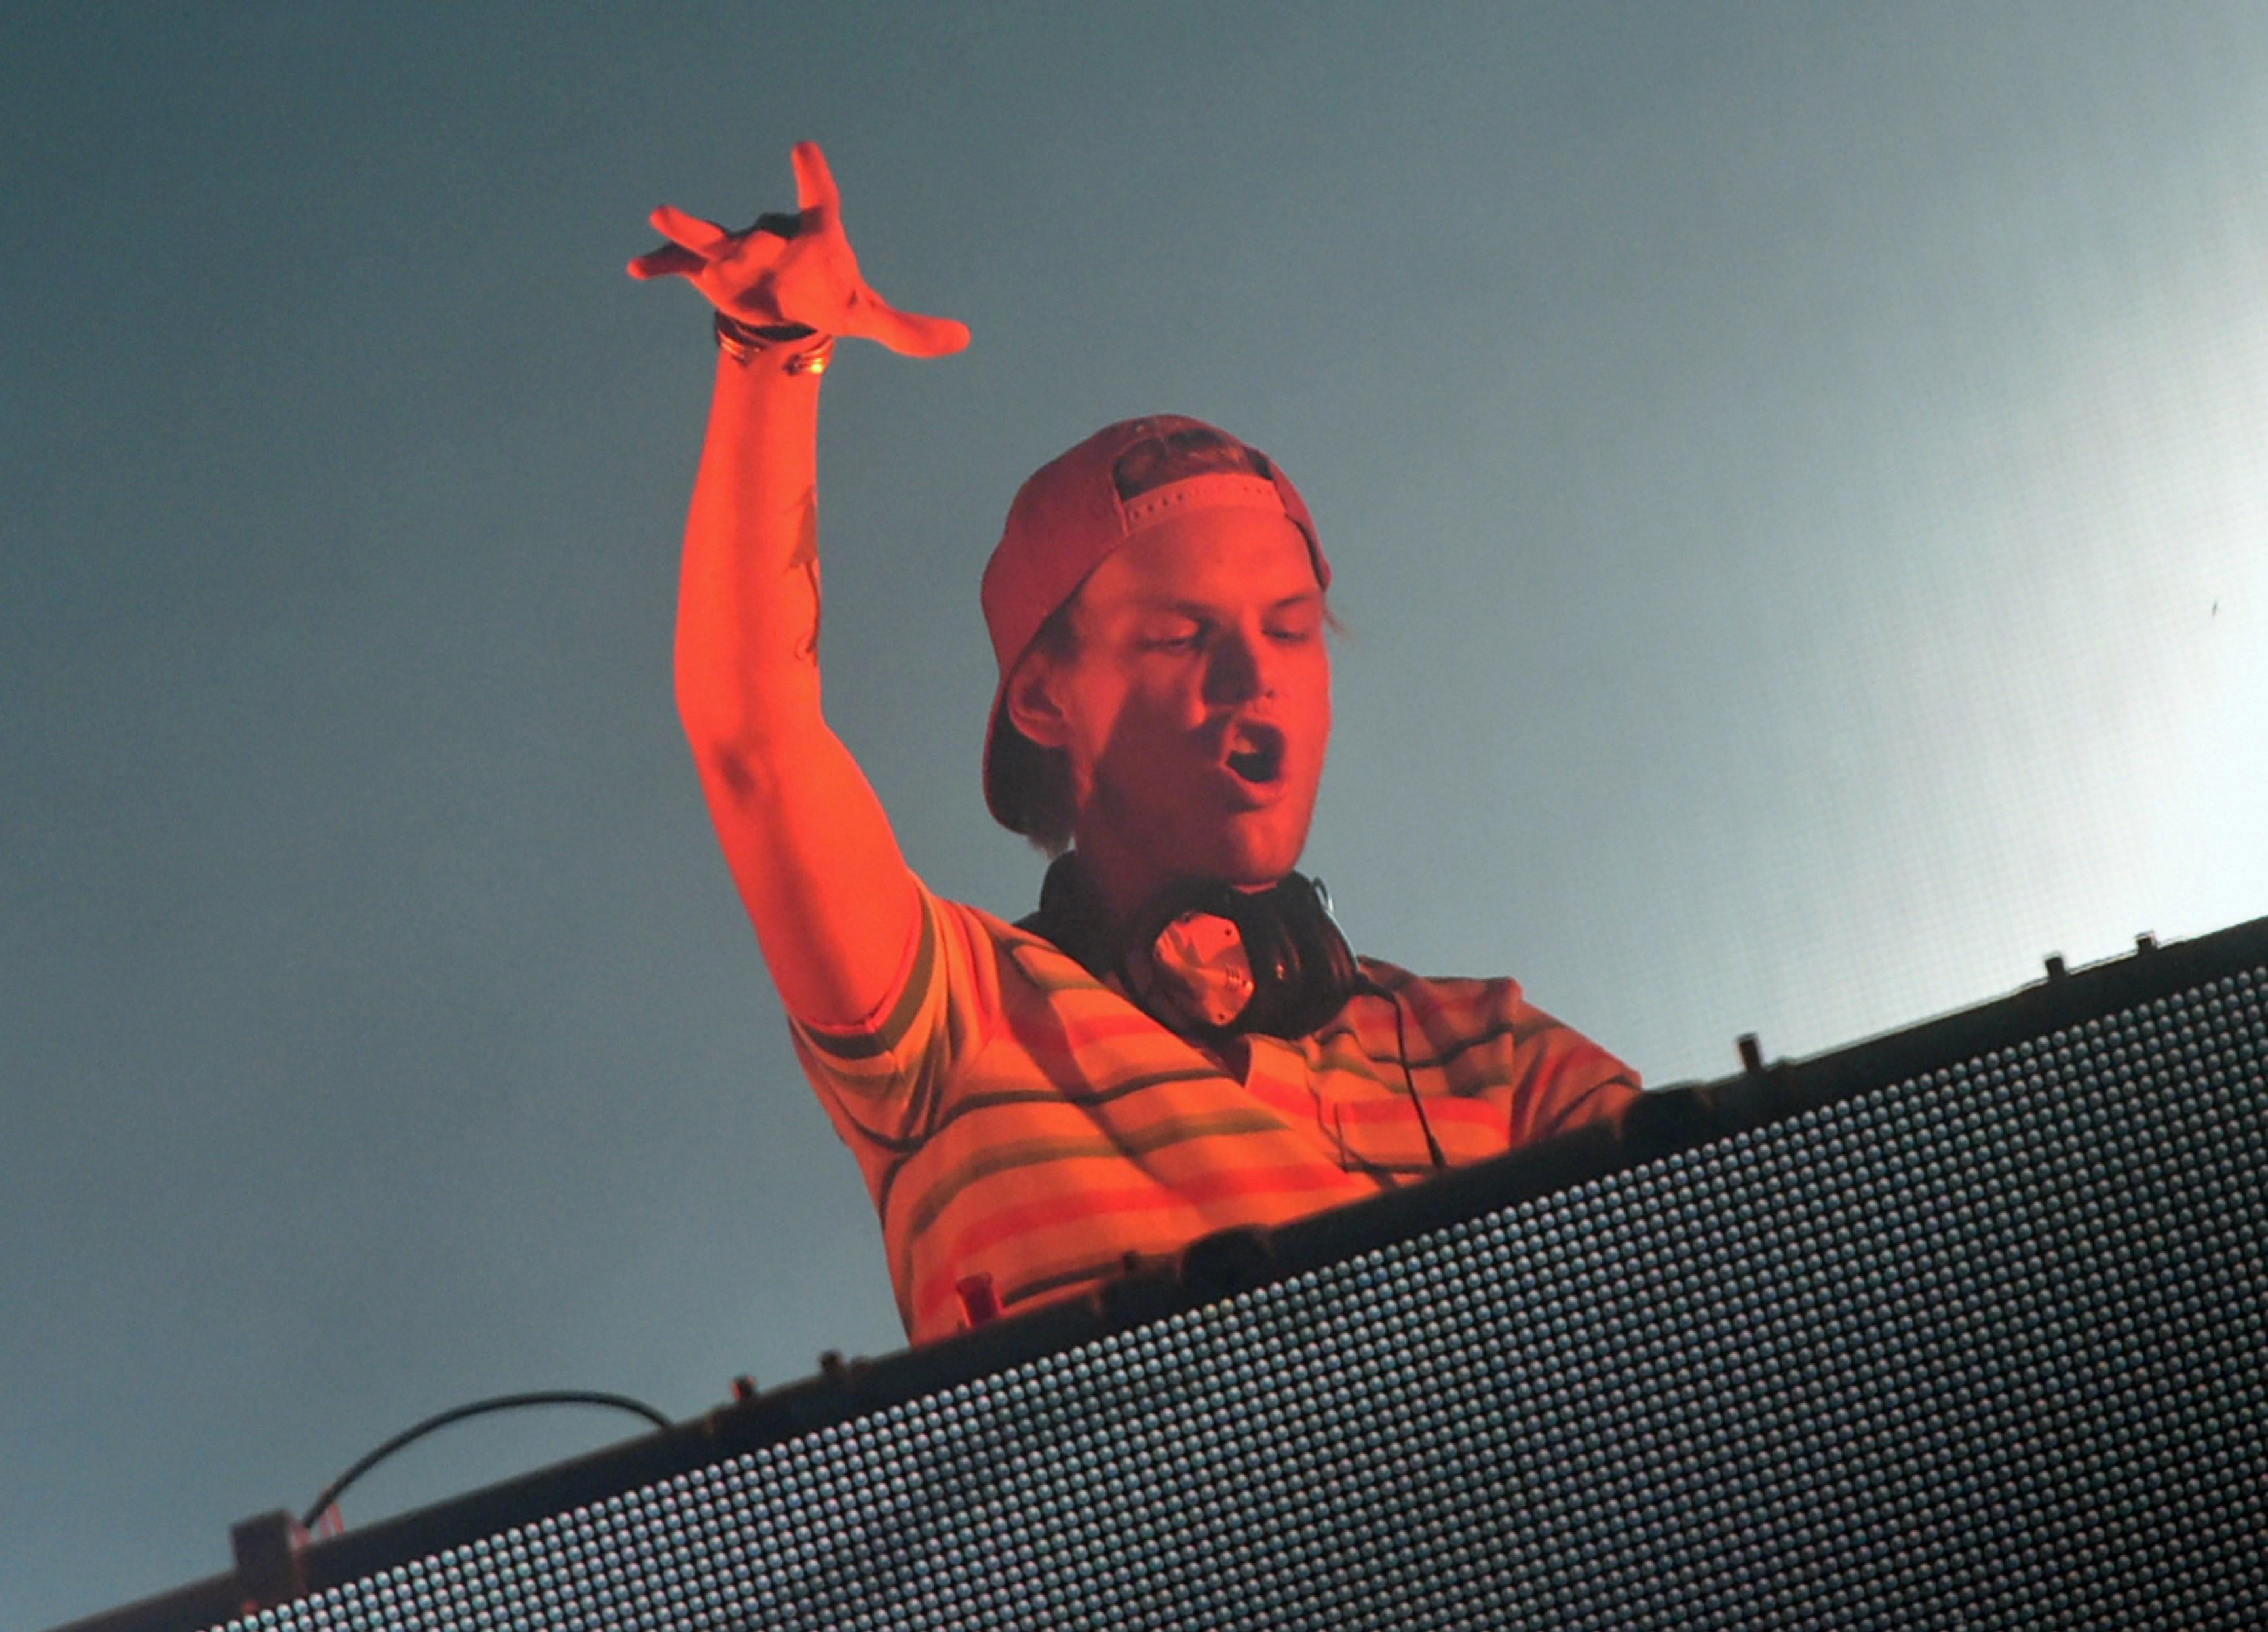 Avicii, wearing headphones around his neck, raises his hand from behind a turntable while onstage.